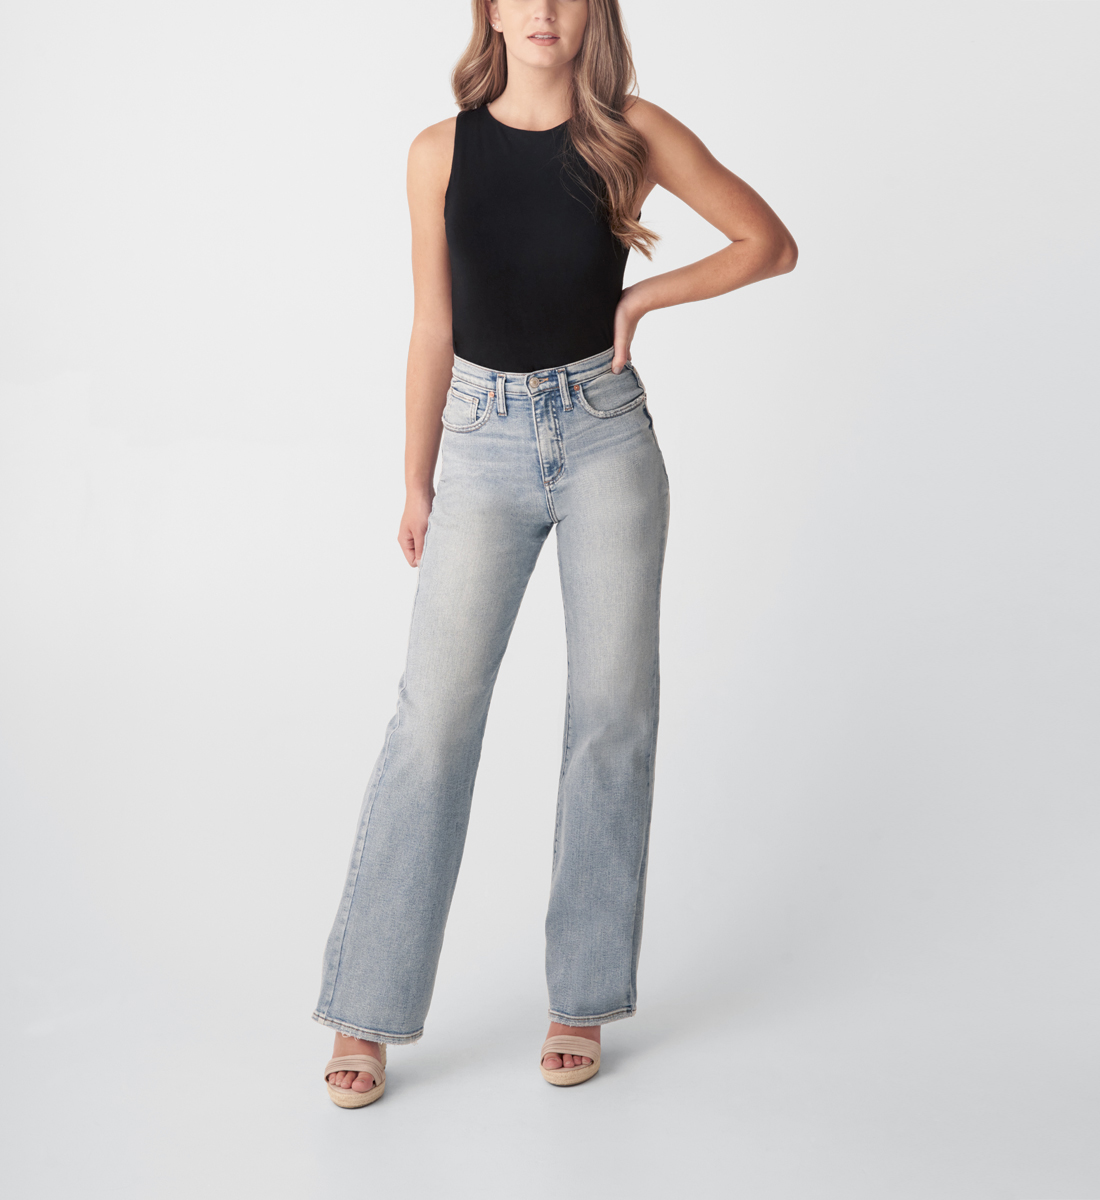 Silver Jeans Highly Desirable High Rise Trouser Leg Jeans